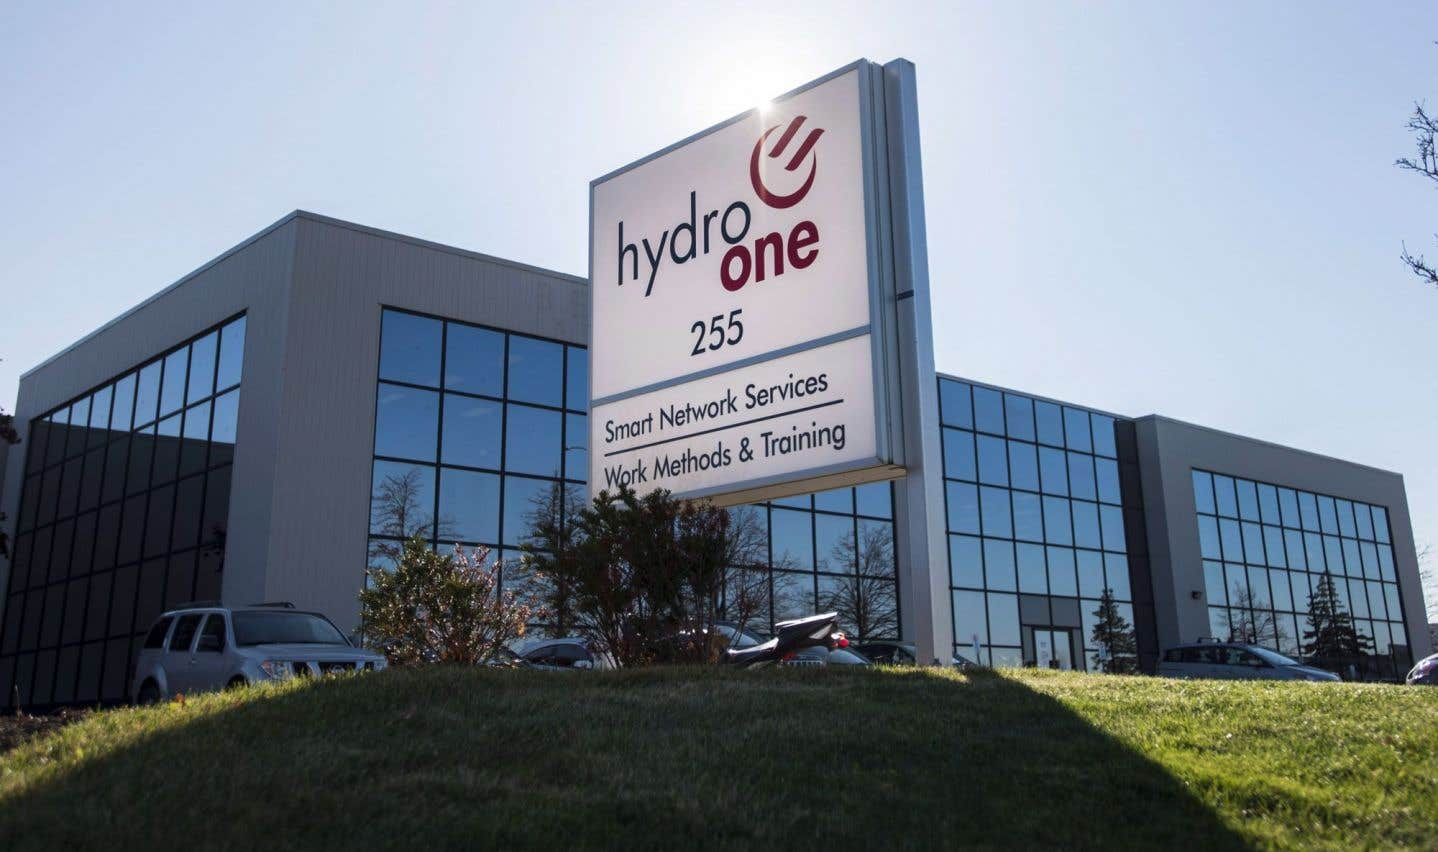 Le syndicat va de l'avant avec sa poursuite contre Hydro One